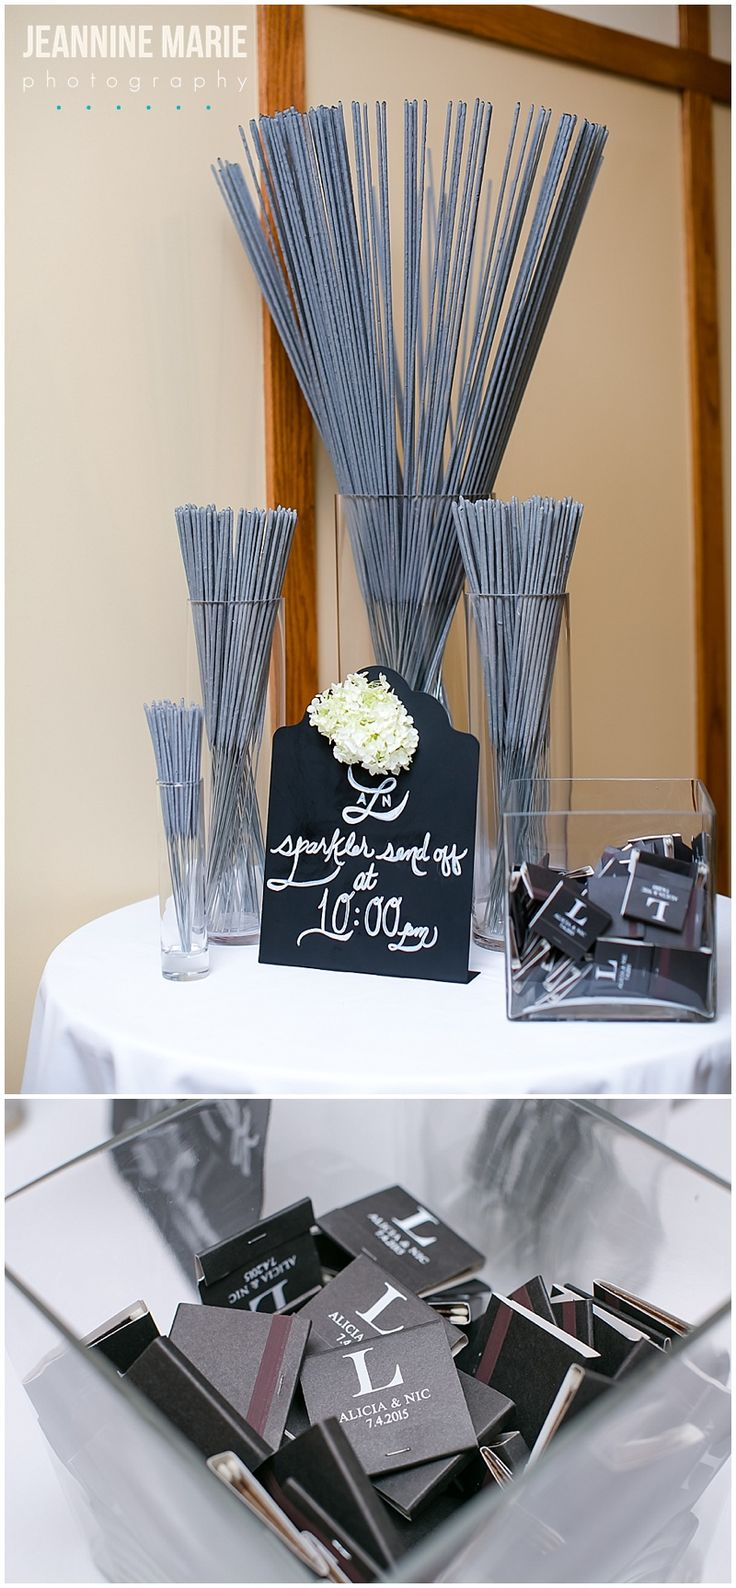 Sparklers And Personalized Matches As Wedding Guest Favors For Olympic Hills